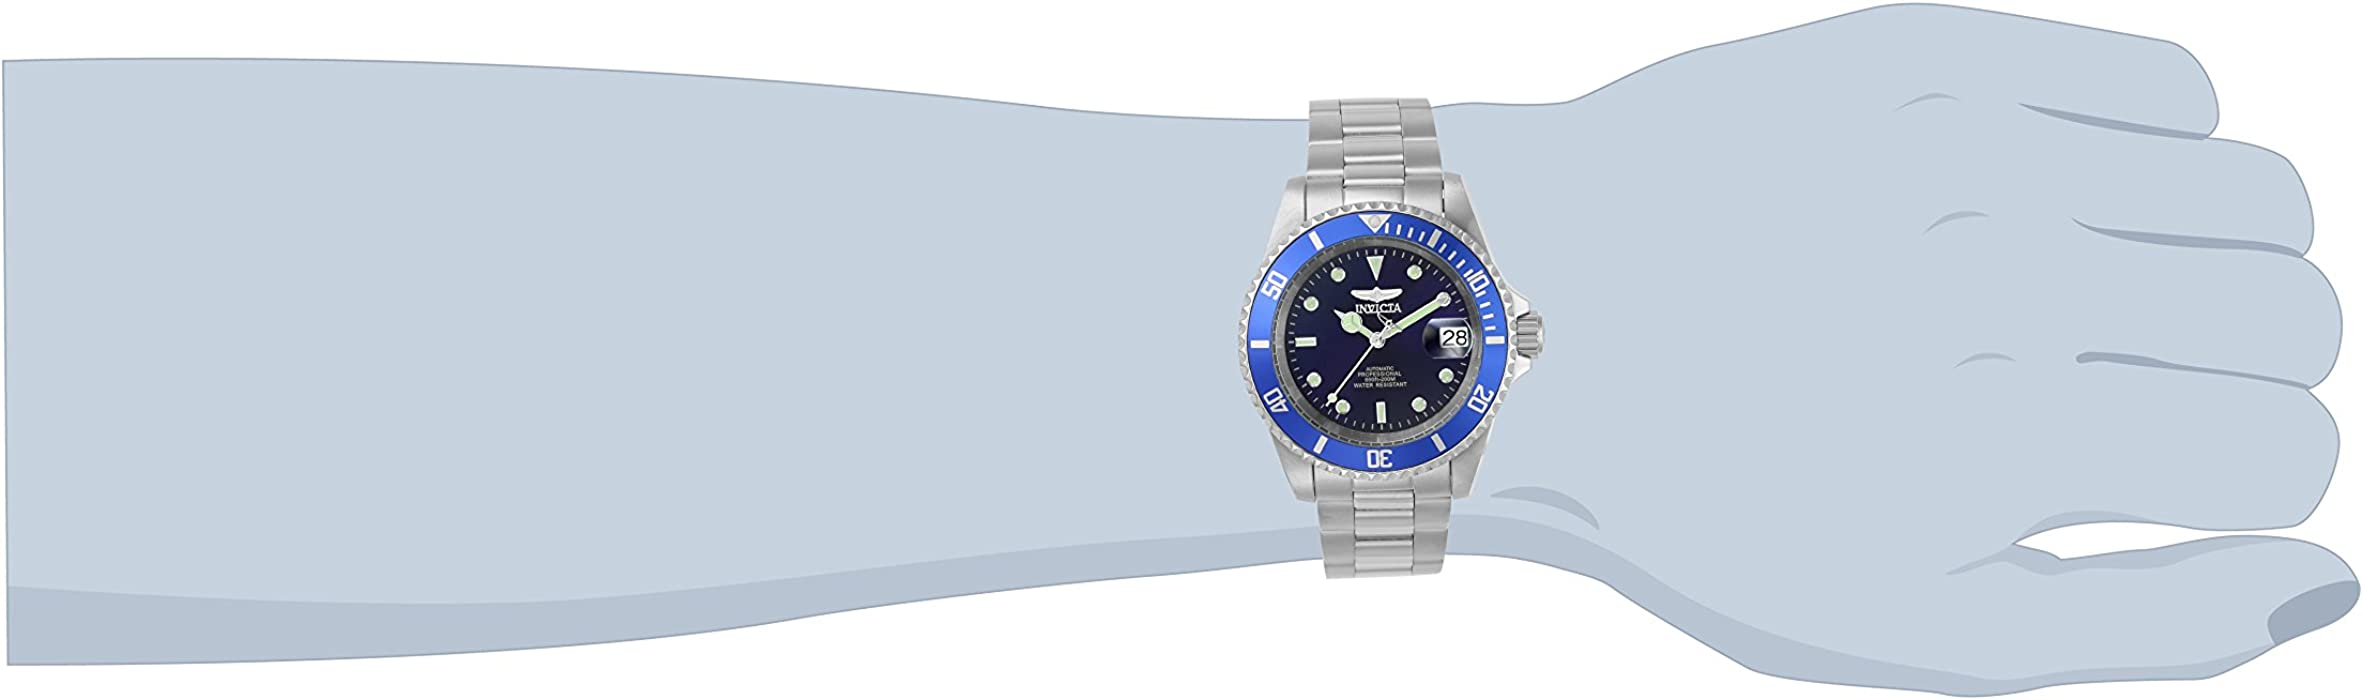 Invicta Men 9094OB Pro Diver Collection Stainless Steel Watch with Link Bracelet SilverBlue